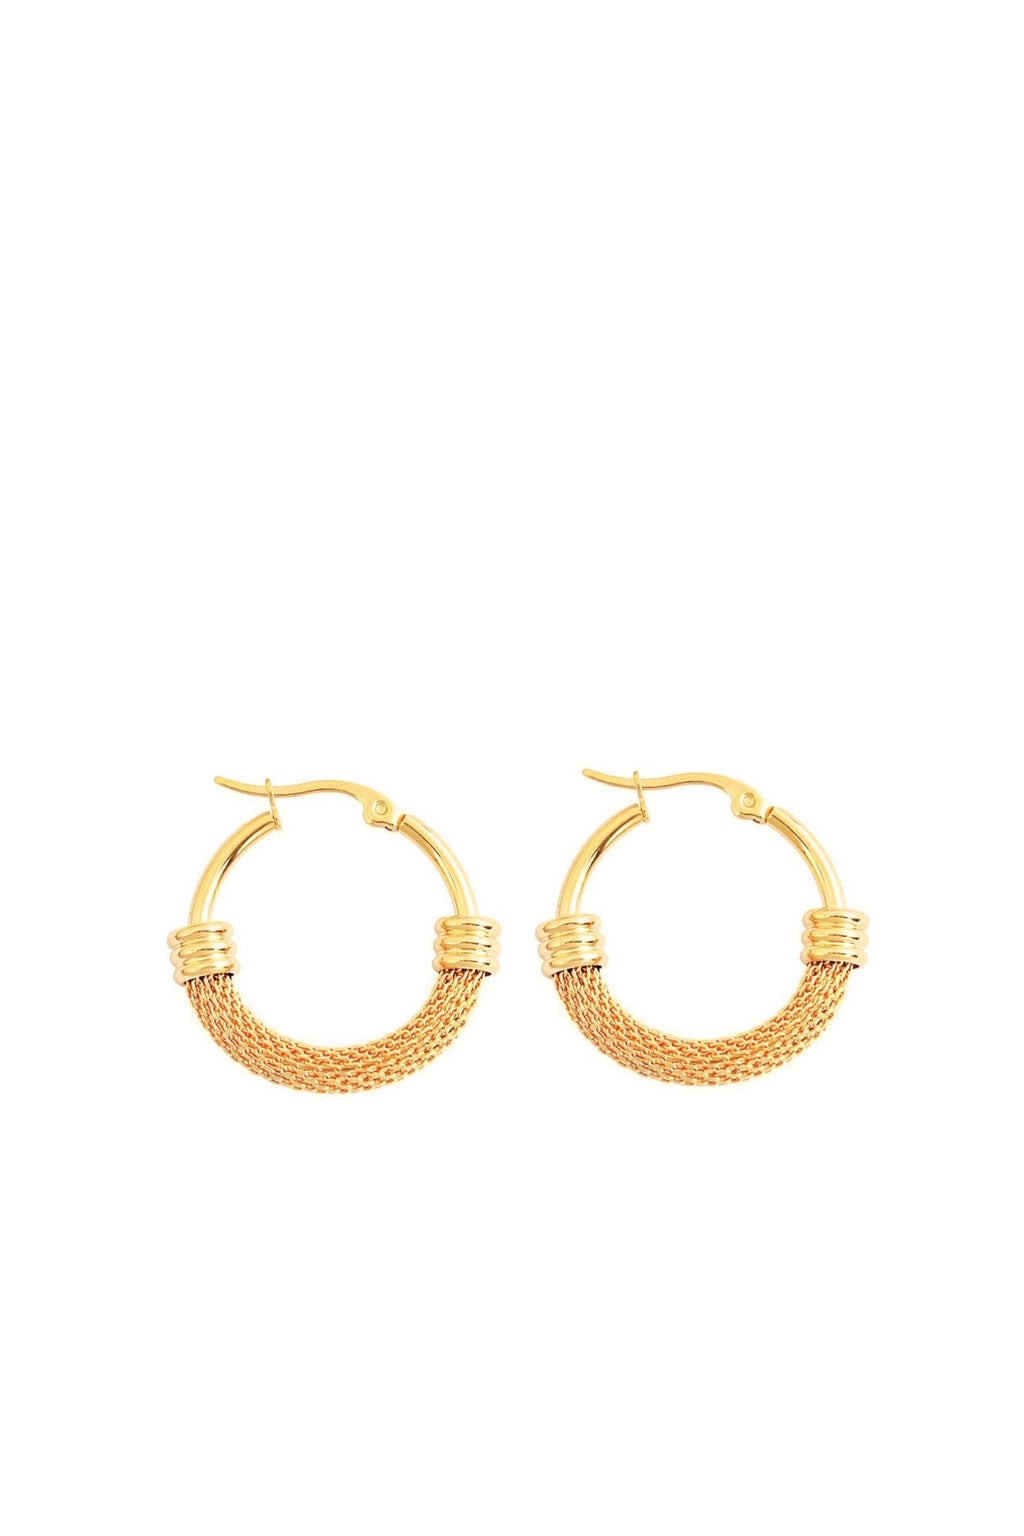 18K Gold Mesh And Polished Hoop Earrings